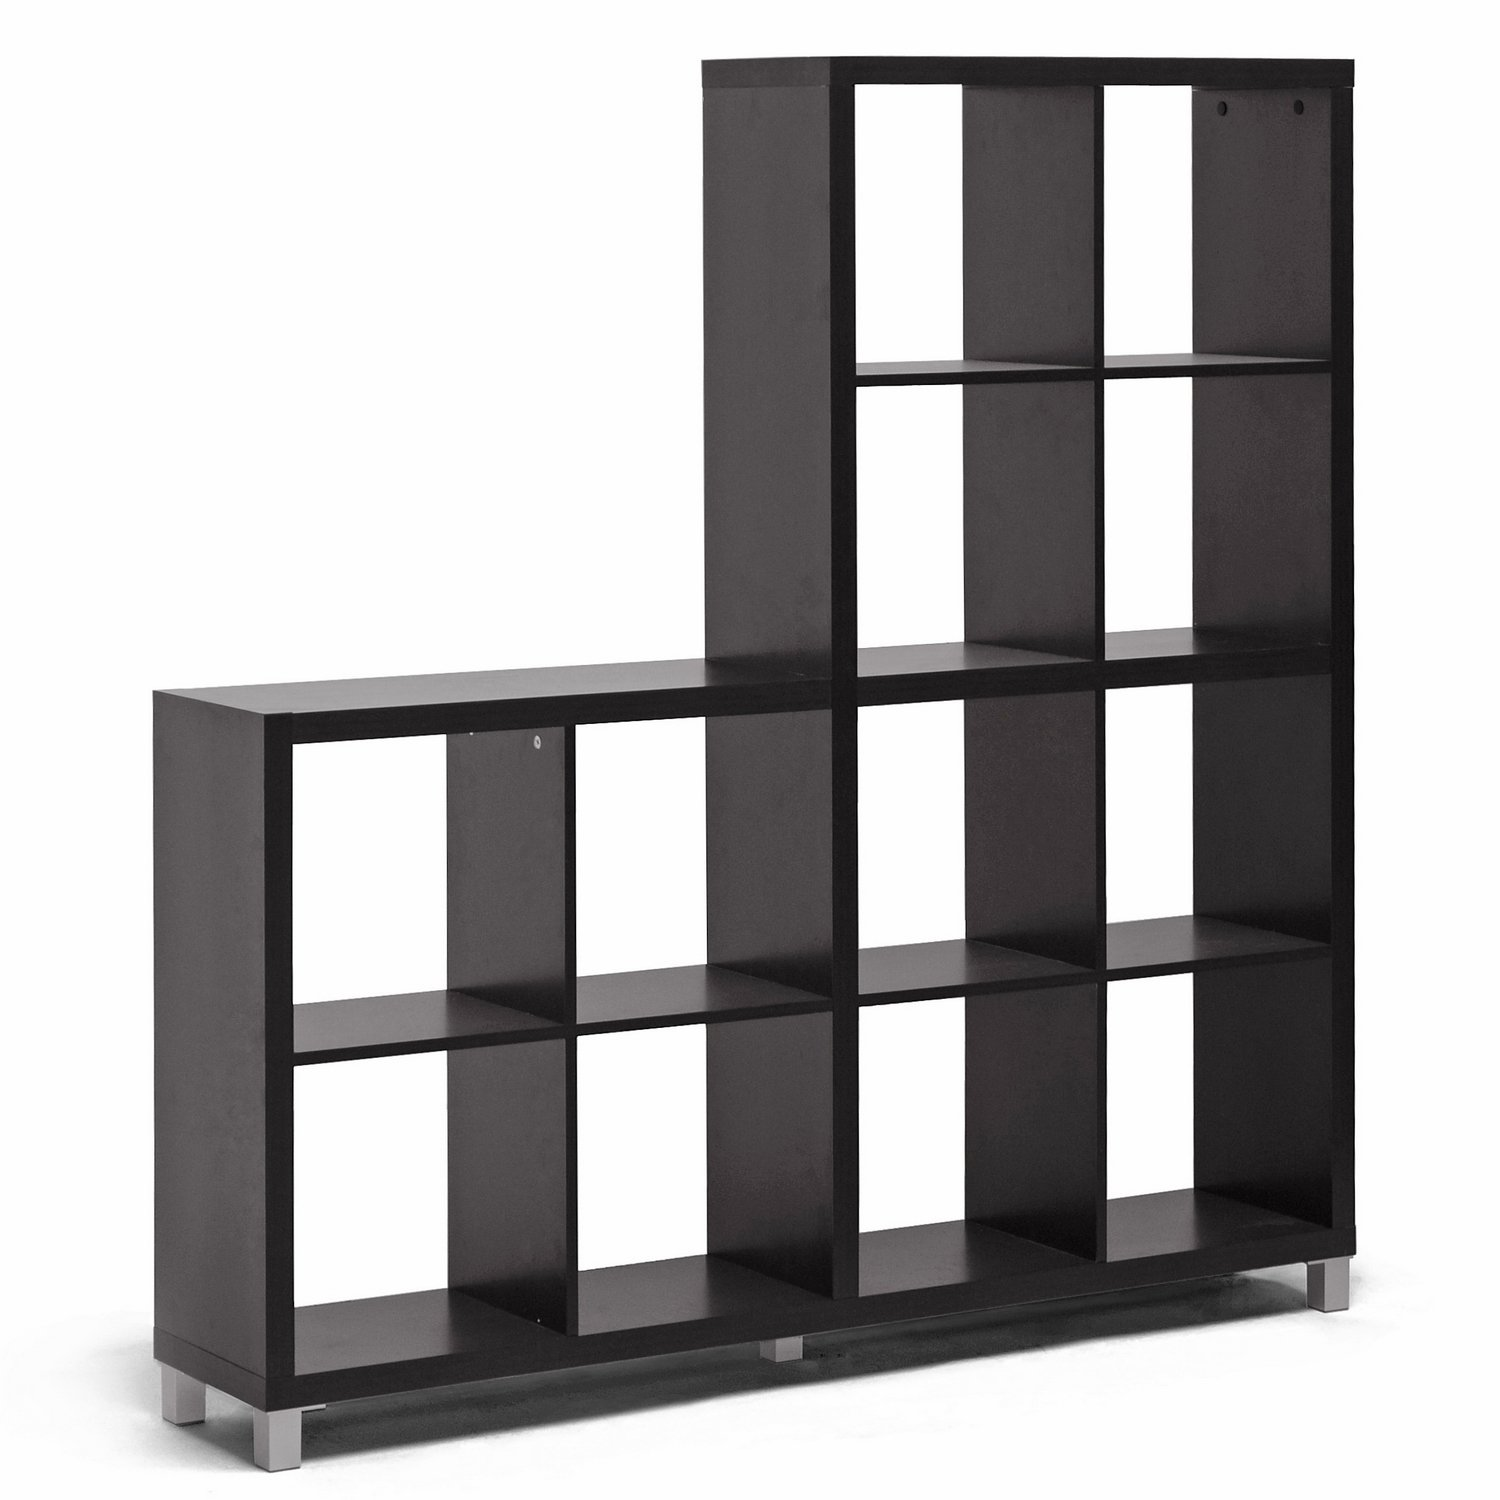 oak shelf shop individual dsc sony single the zoom cube kit situ boon range image cubes shelving